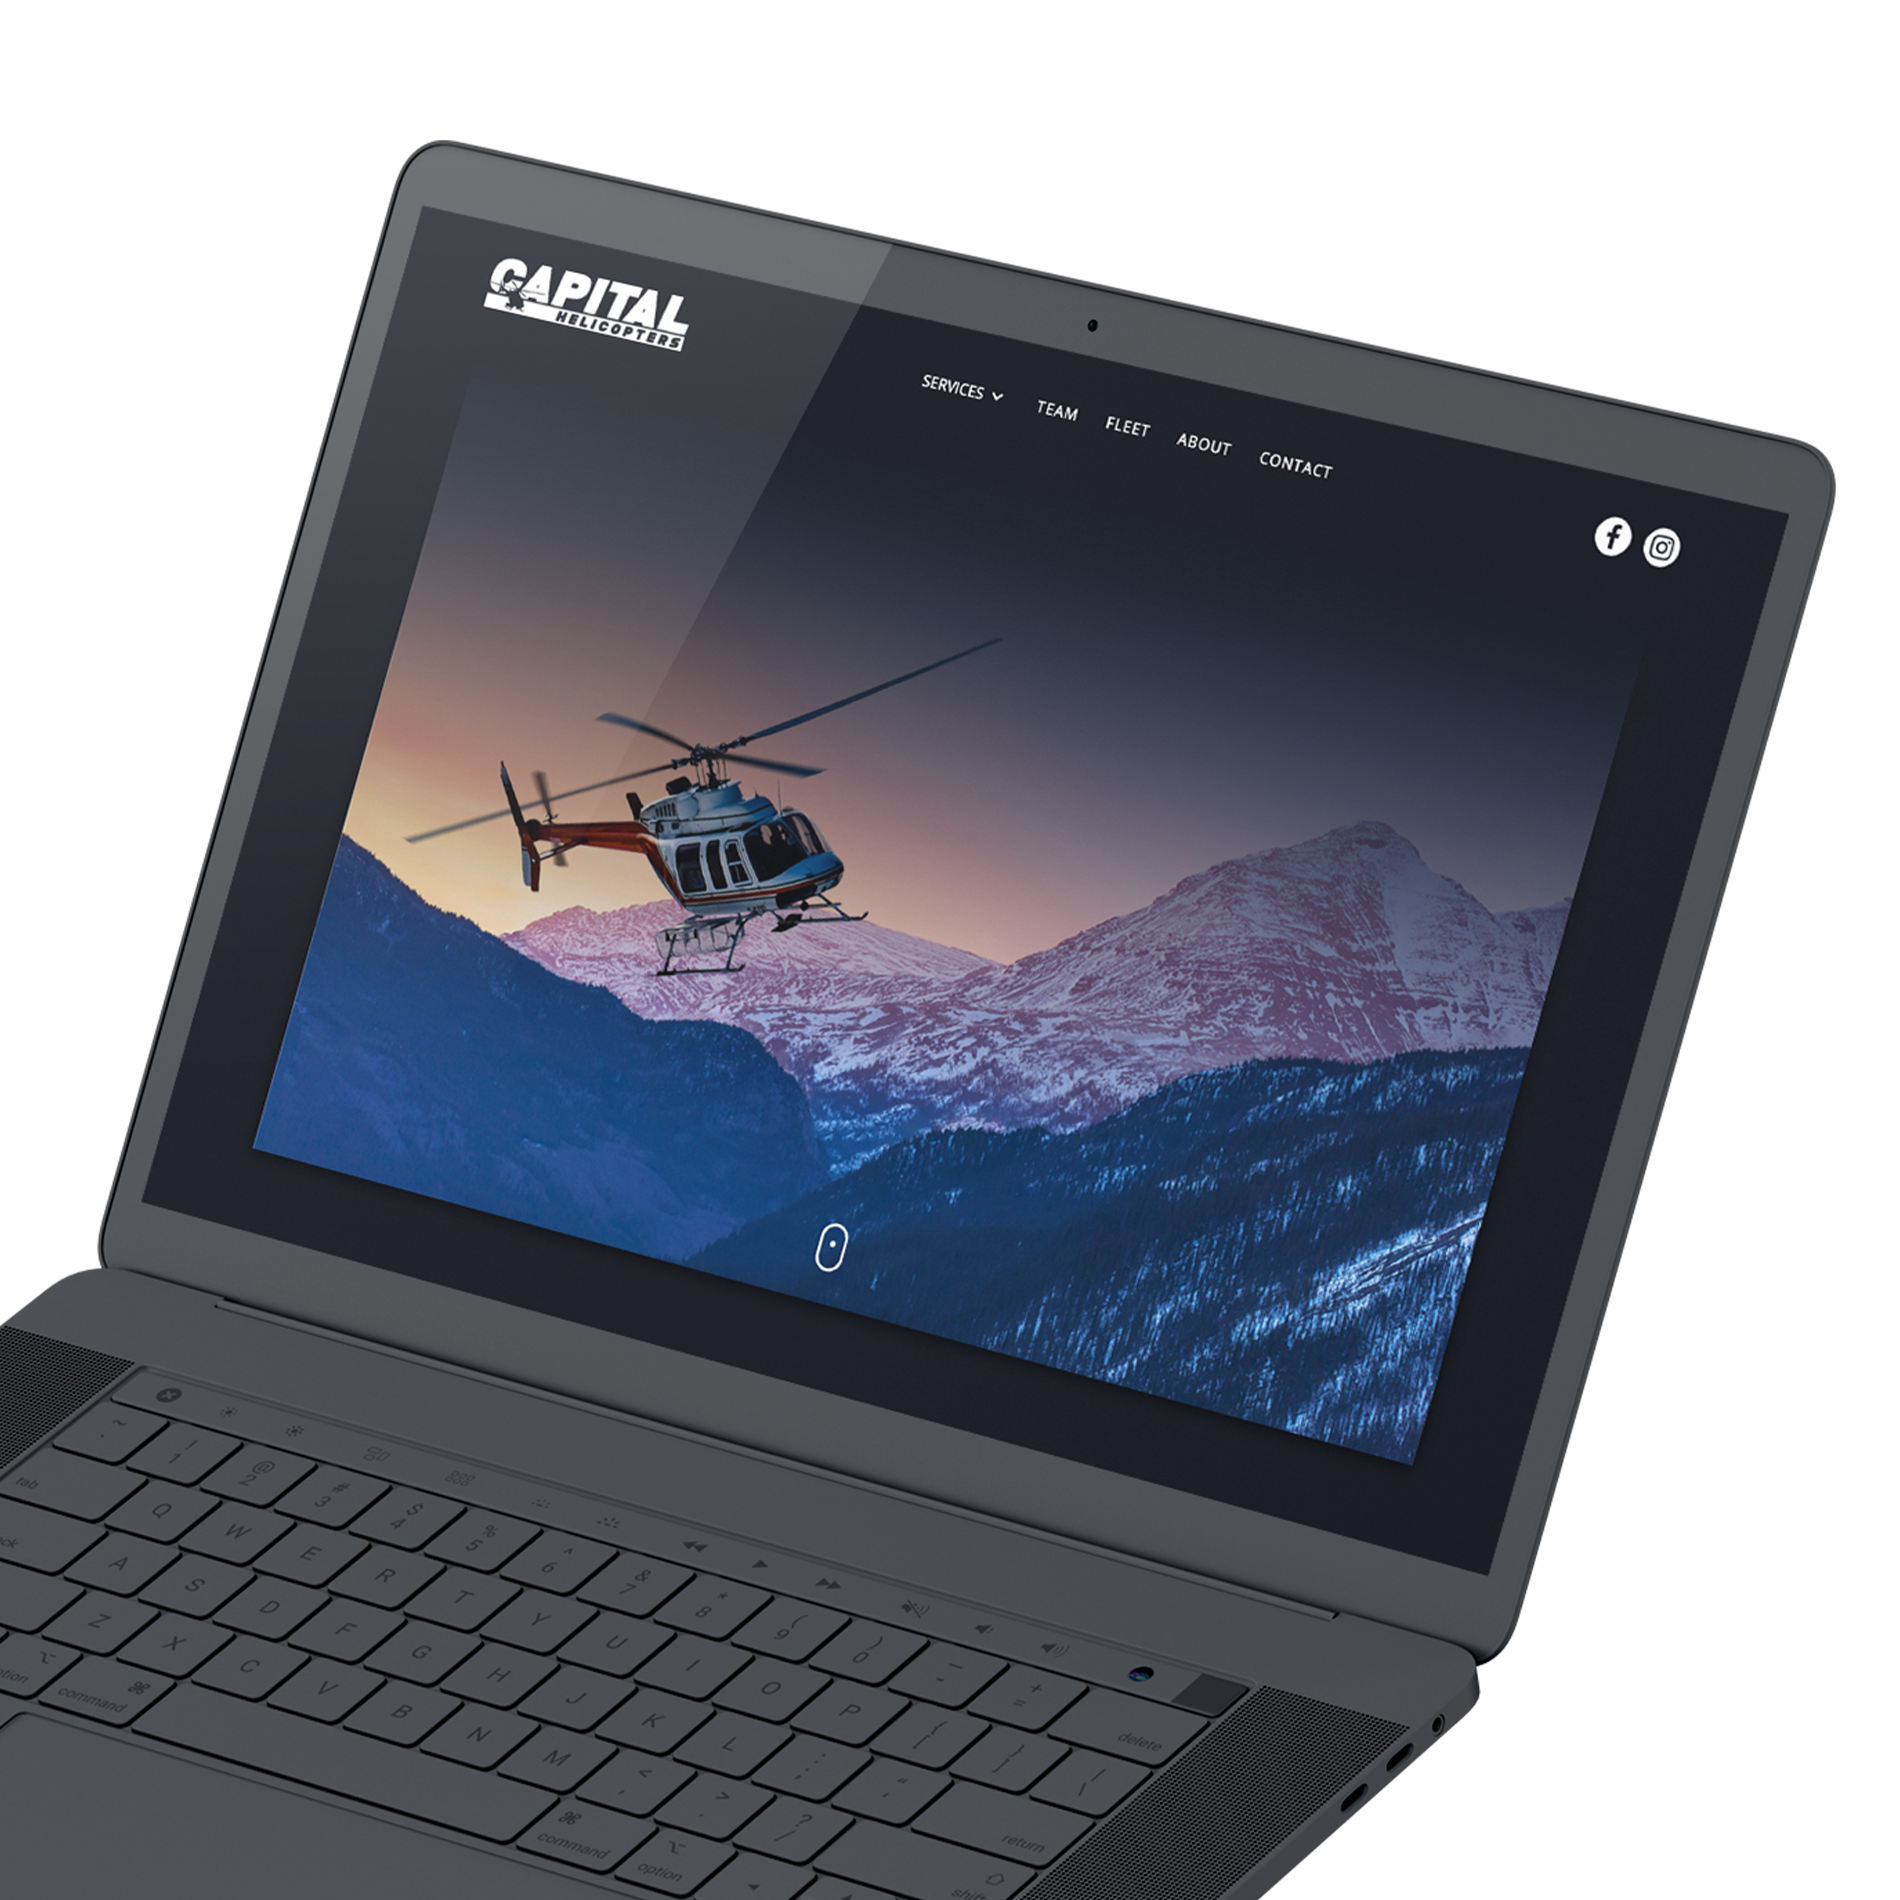 Example of website landing page for Capital Helicopters